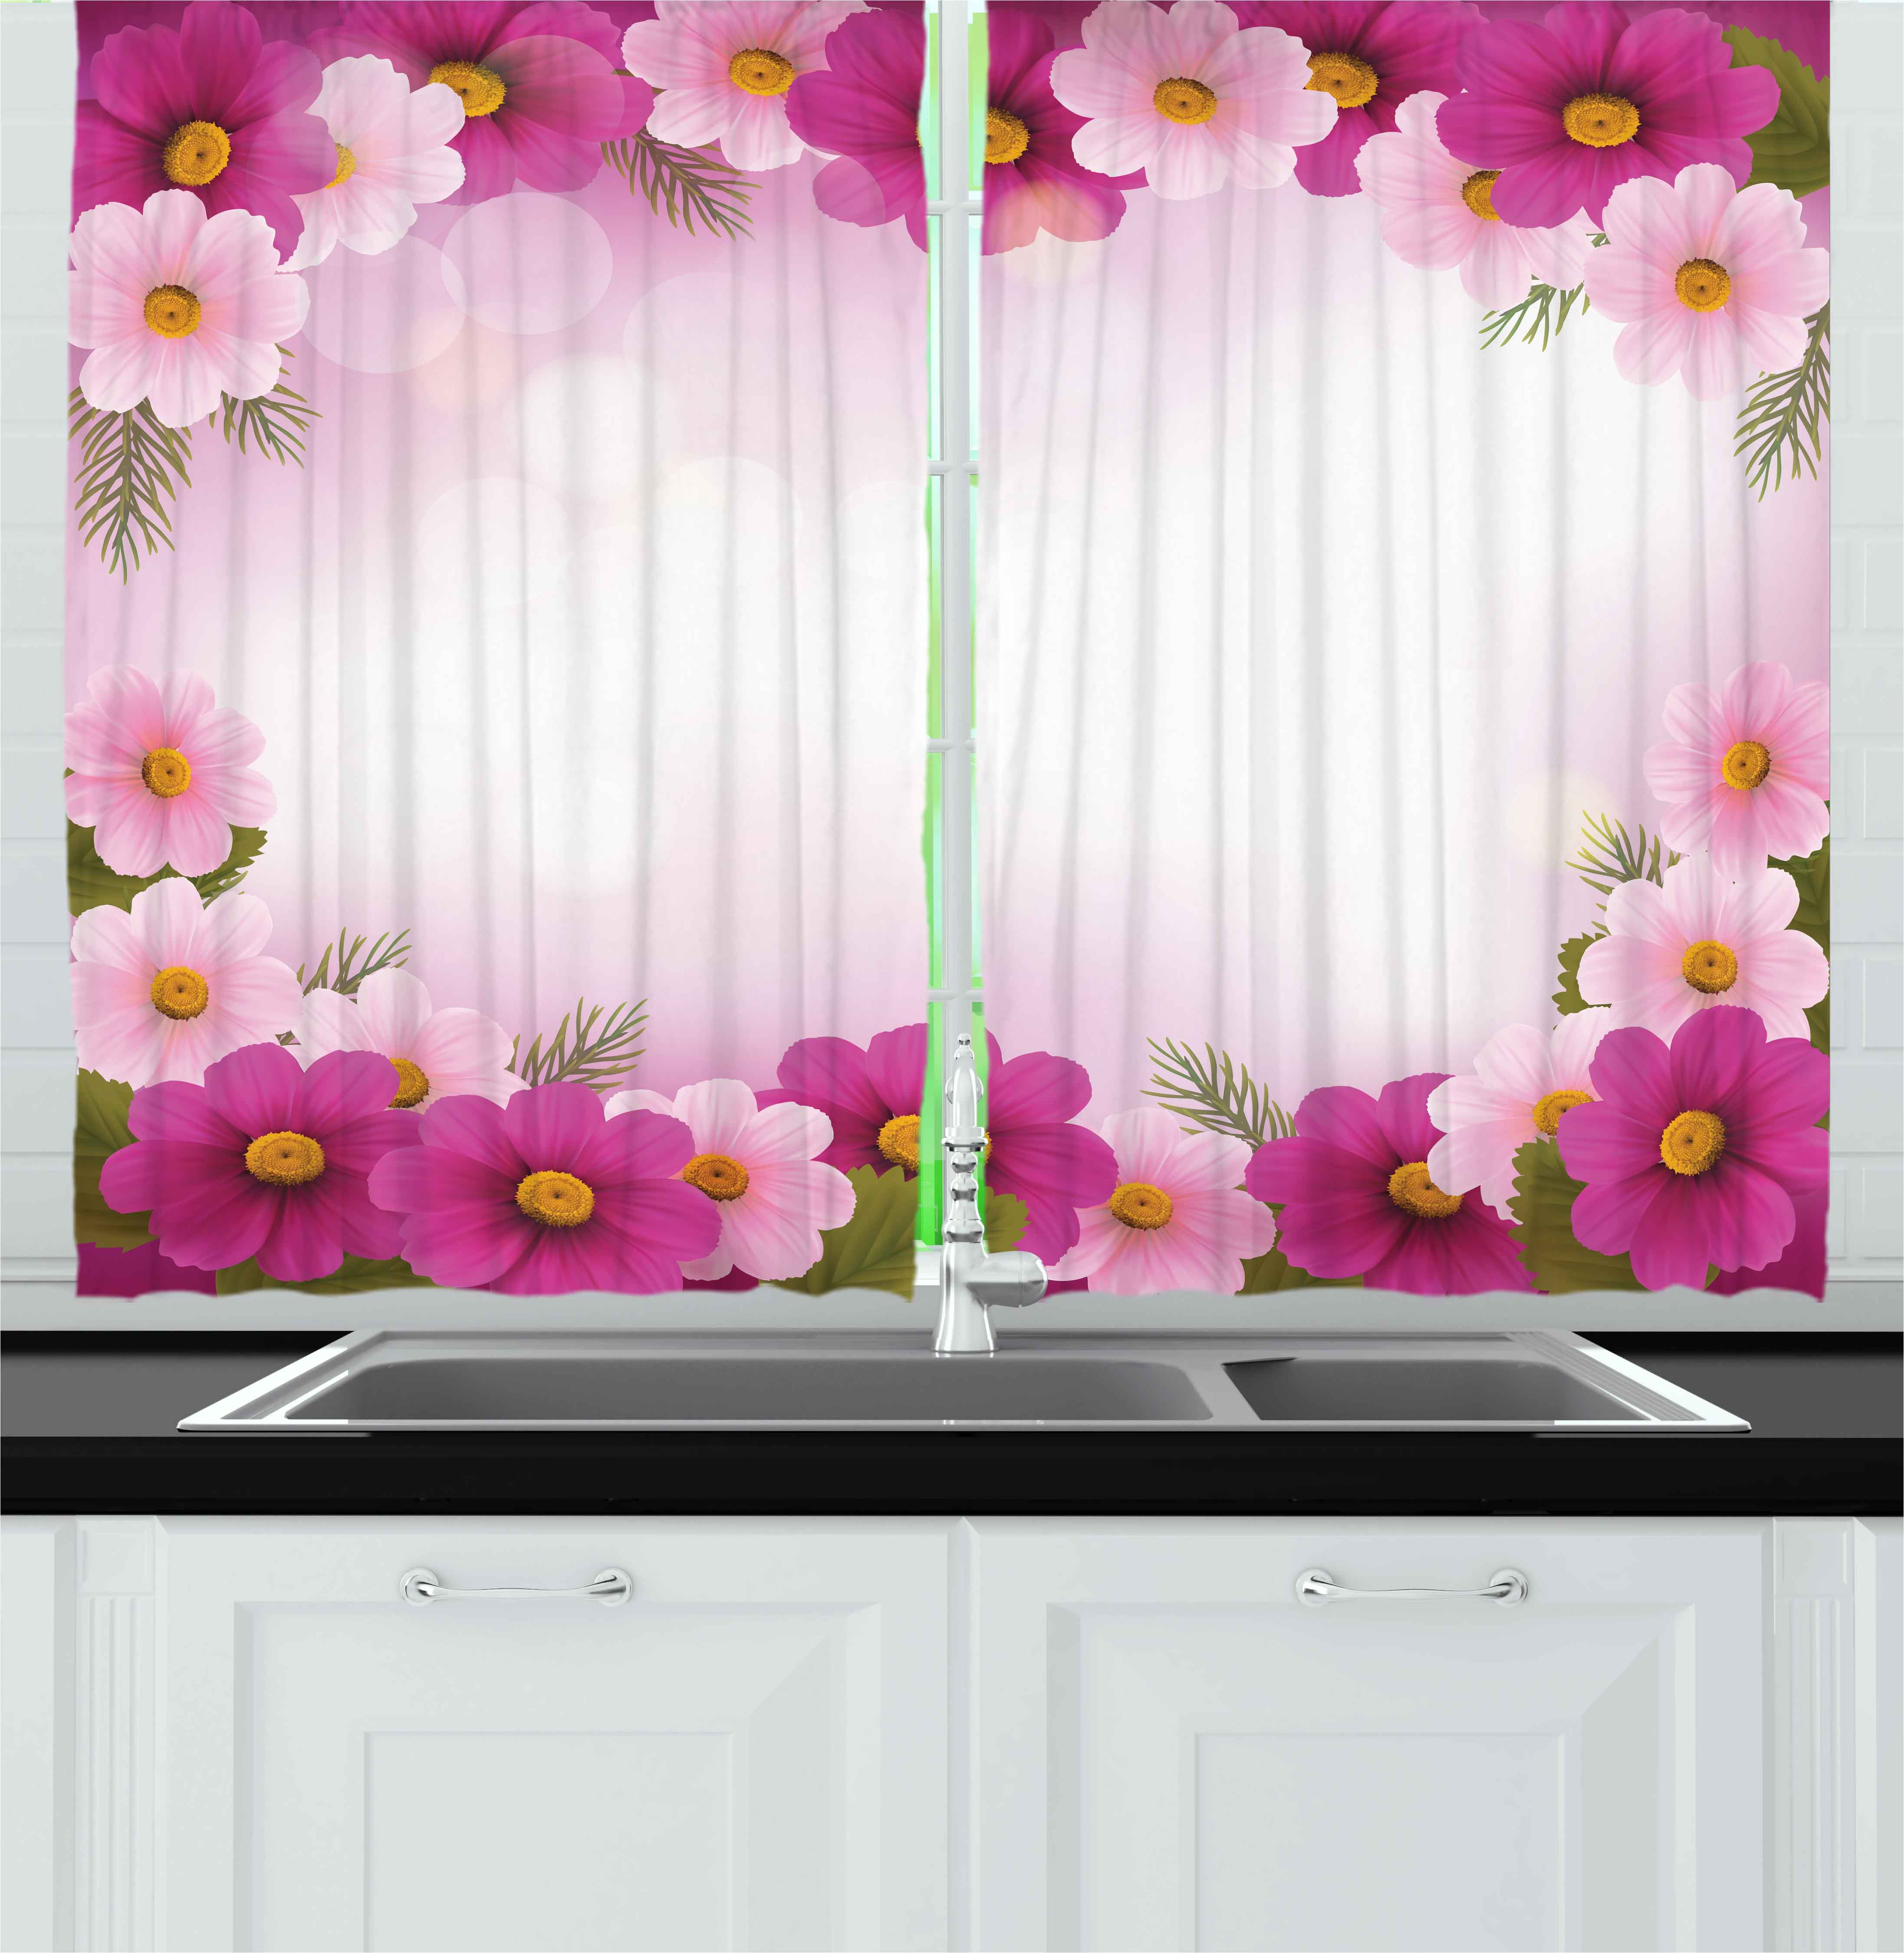 Pink Curtains 2 Panels Set, Framework with Romantic Daisies Valentine\'s Day  Design Celebration Theme, Window Drapes for Living Room Bedroom, 55W X 39L  ...